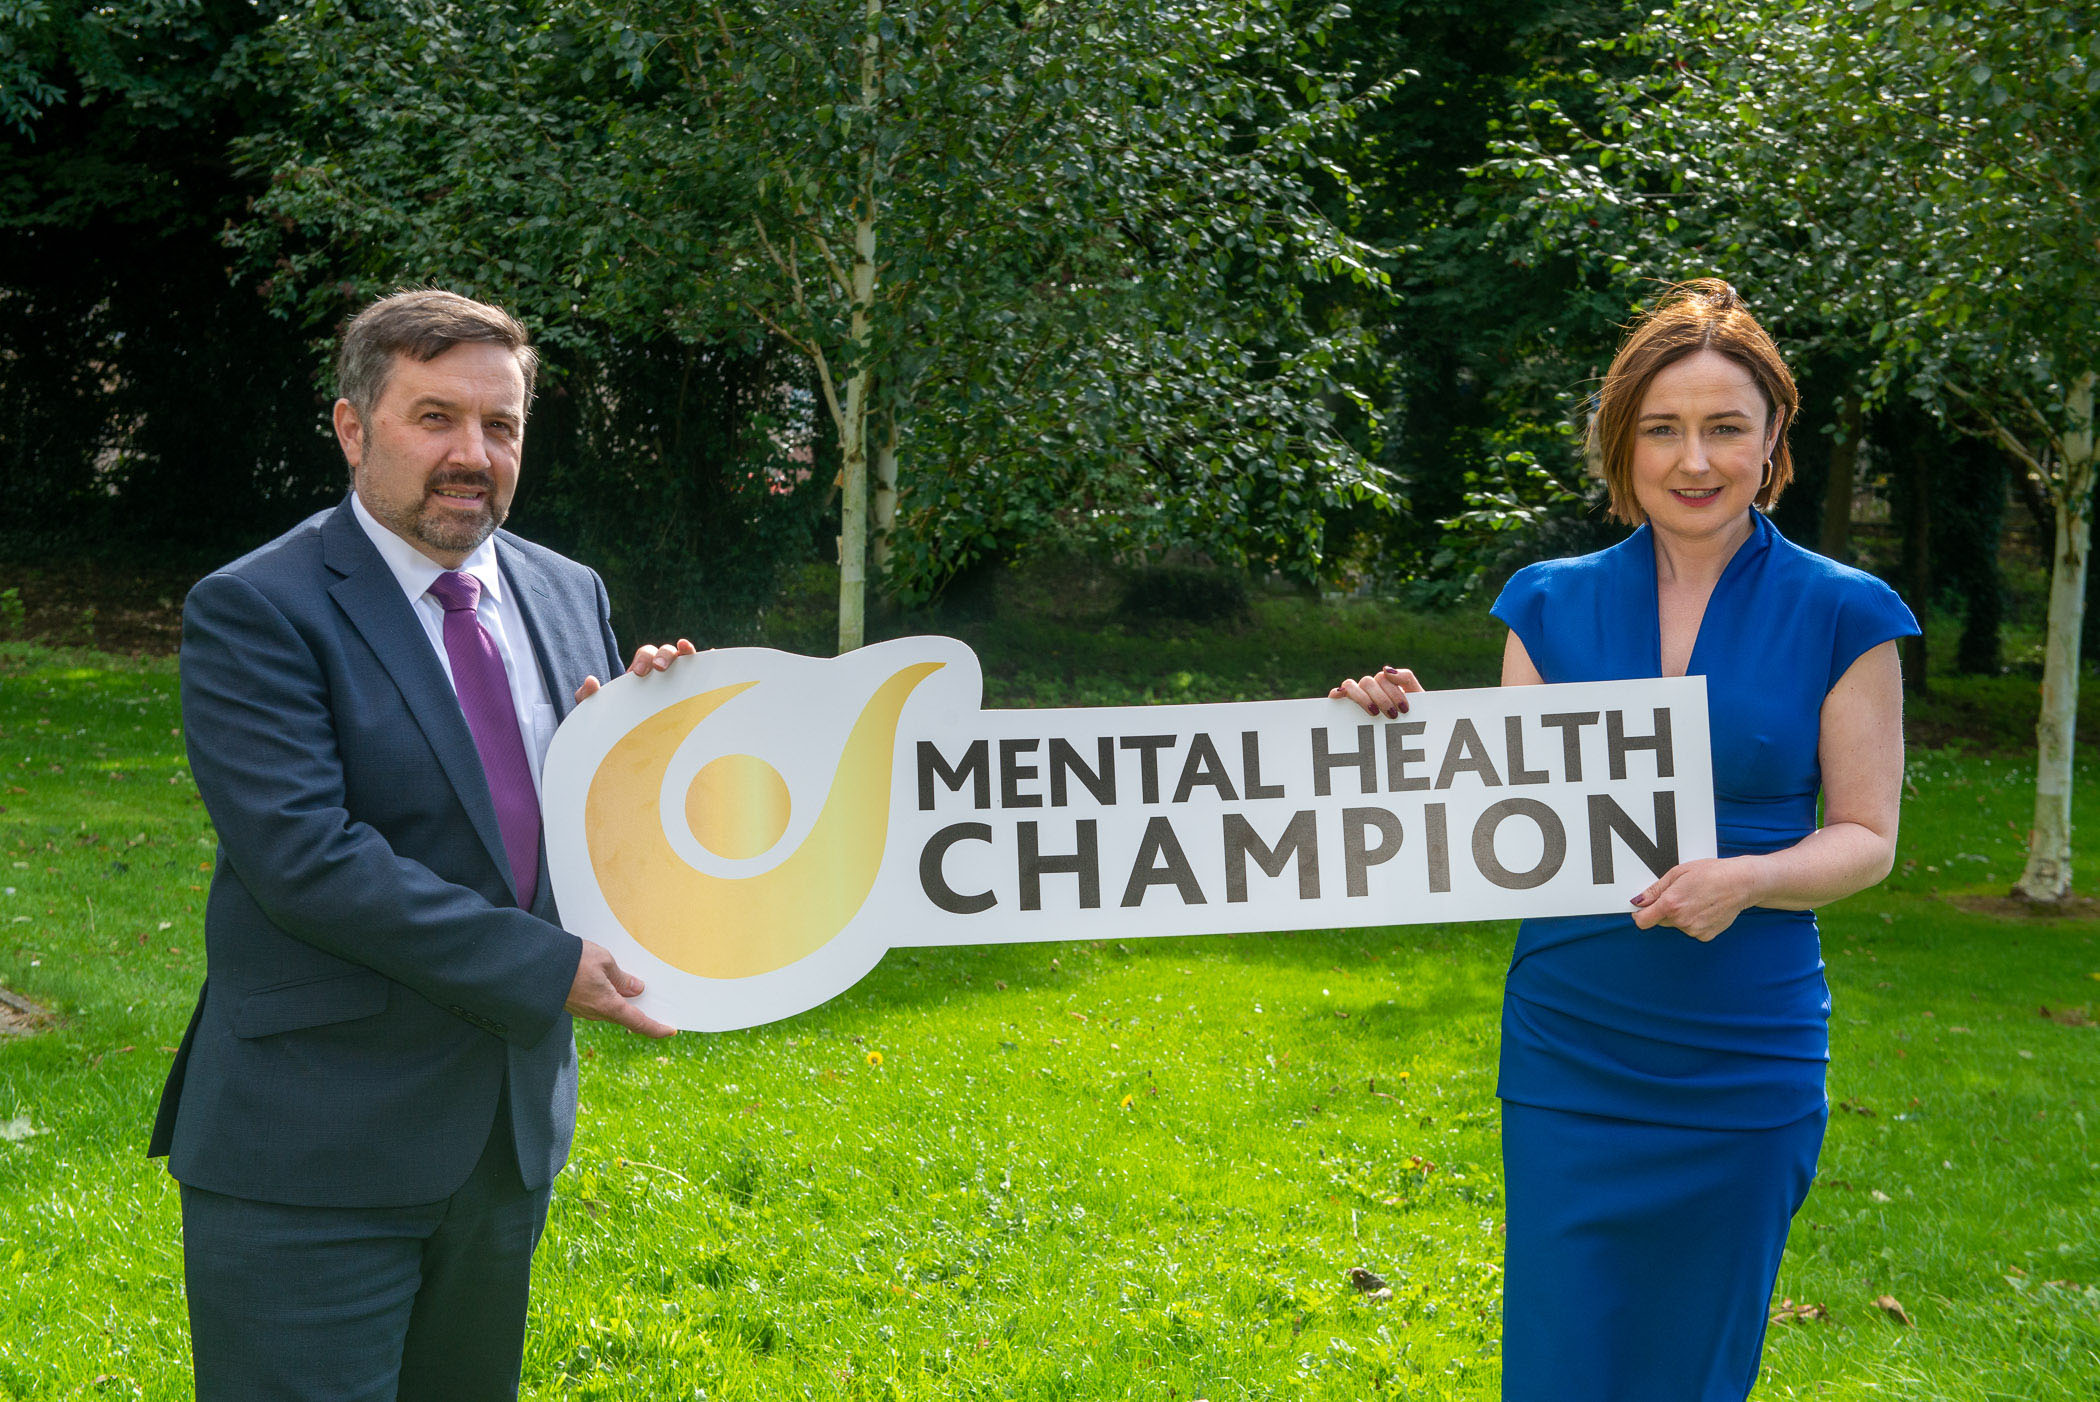 Mental Health Champion appointed - Newry Times - newry local newspaper